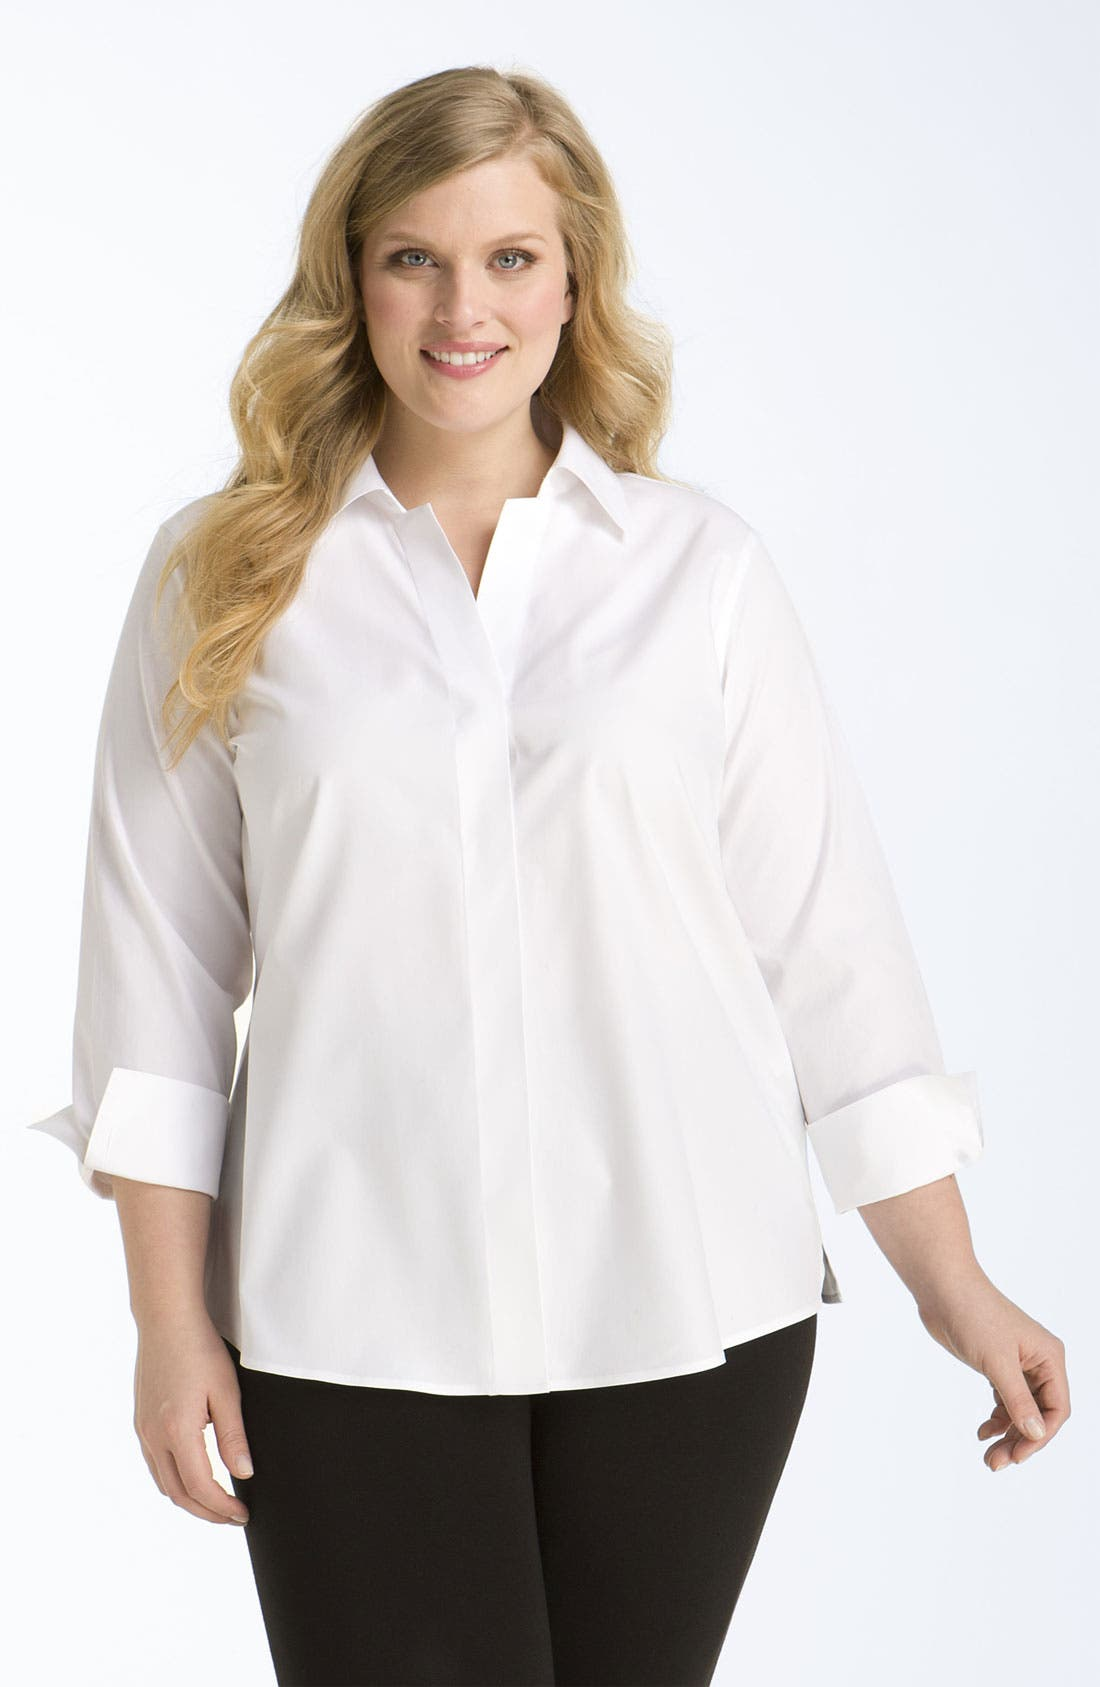 Main Image - Foxcroft Wrinkle Free Shaped Shirt (Plus Size)